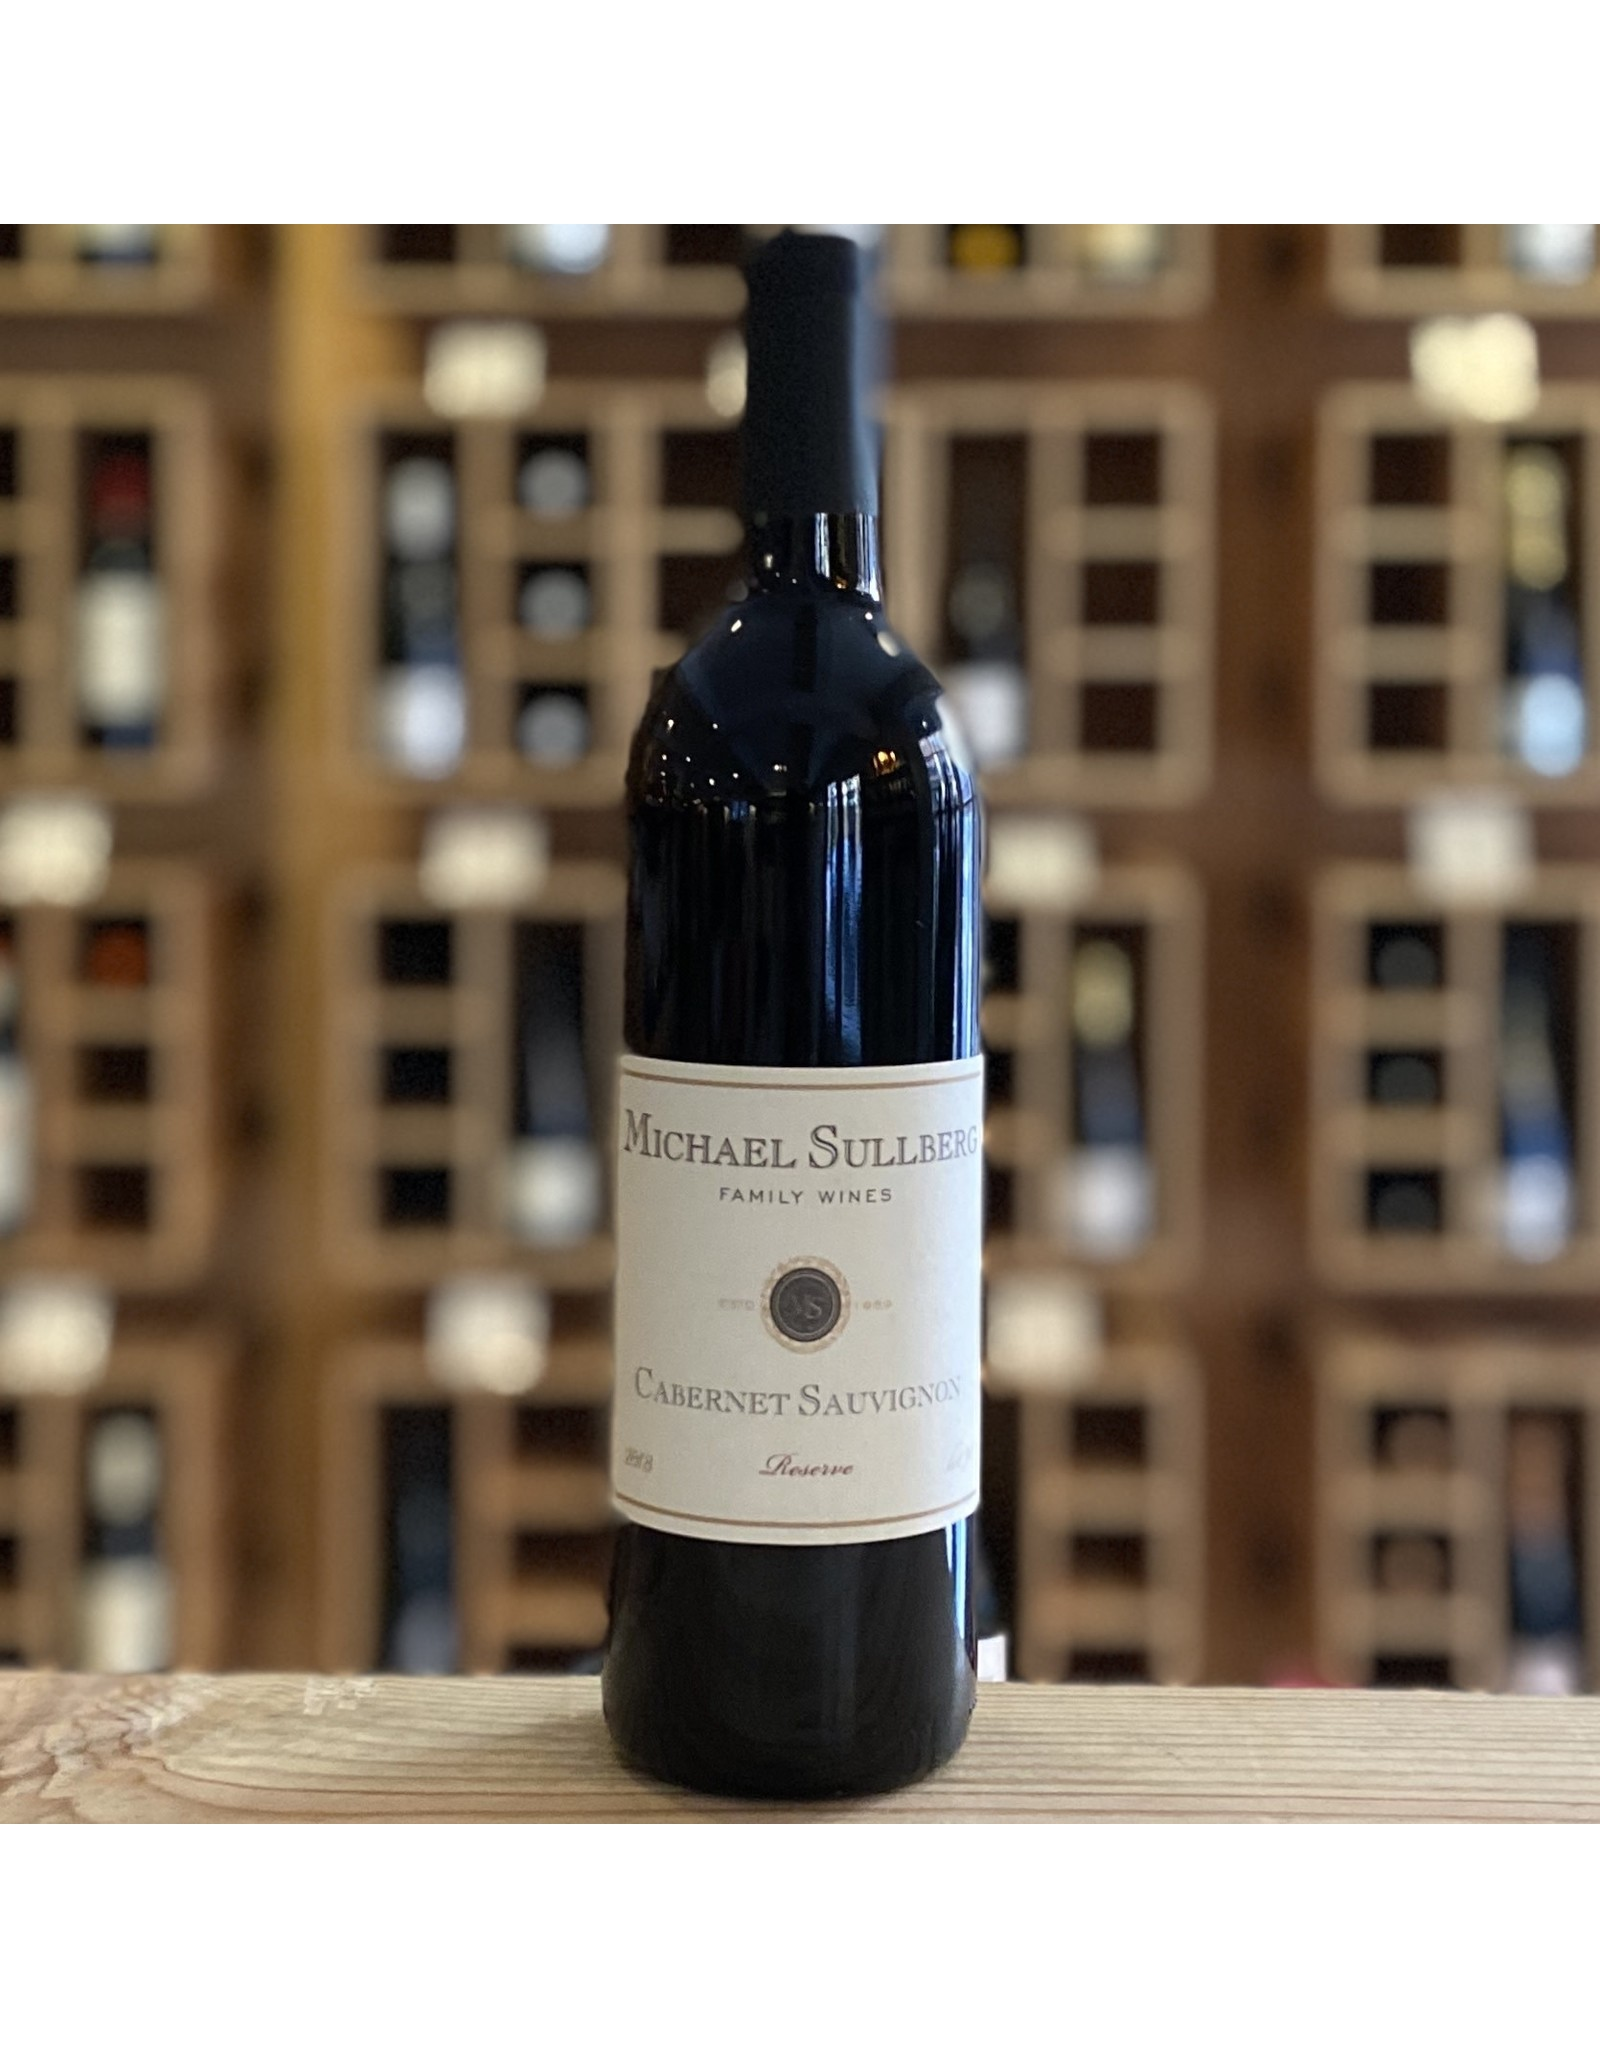 California Michael Sullberg Family ''Reserve'' Cabernet 2018 - California